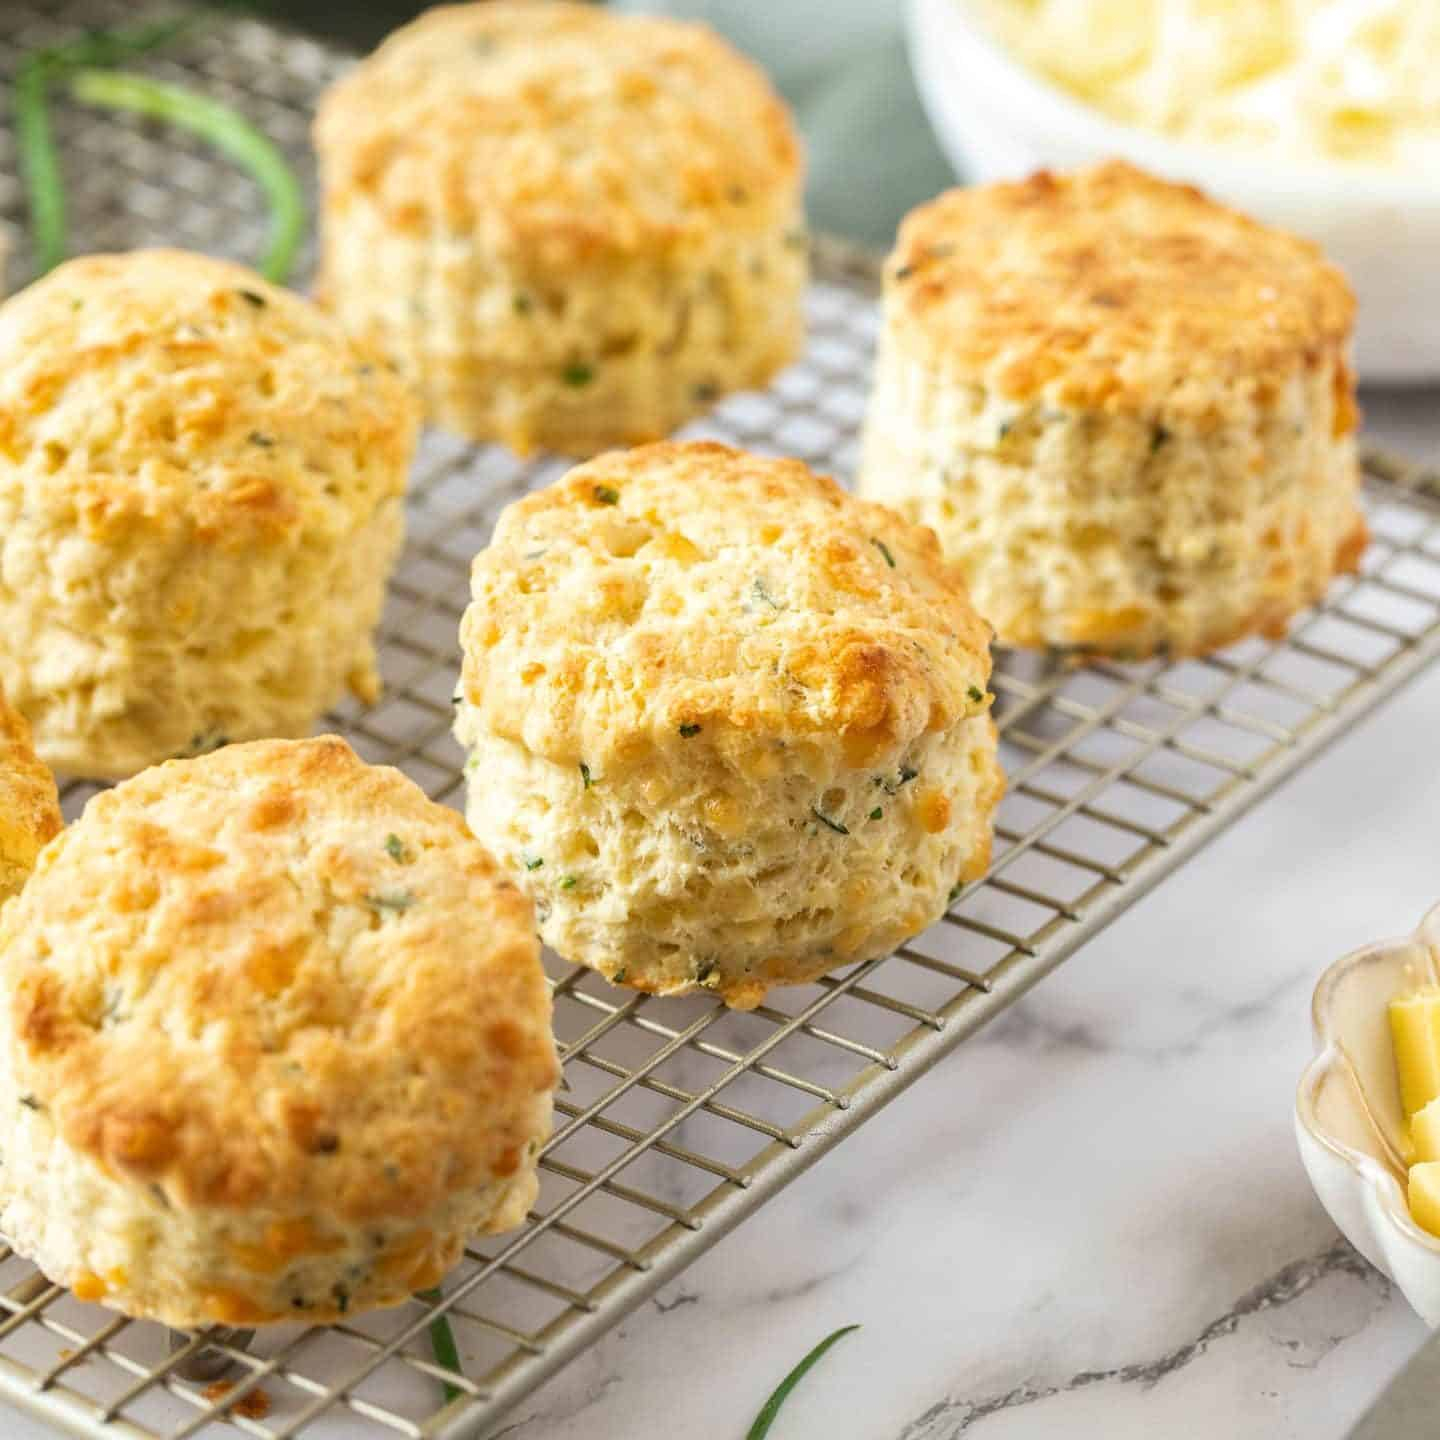 Closeup of 5 cheese scones on a wire cooling rack.